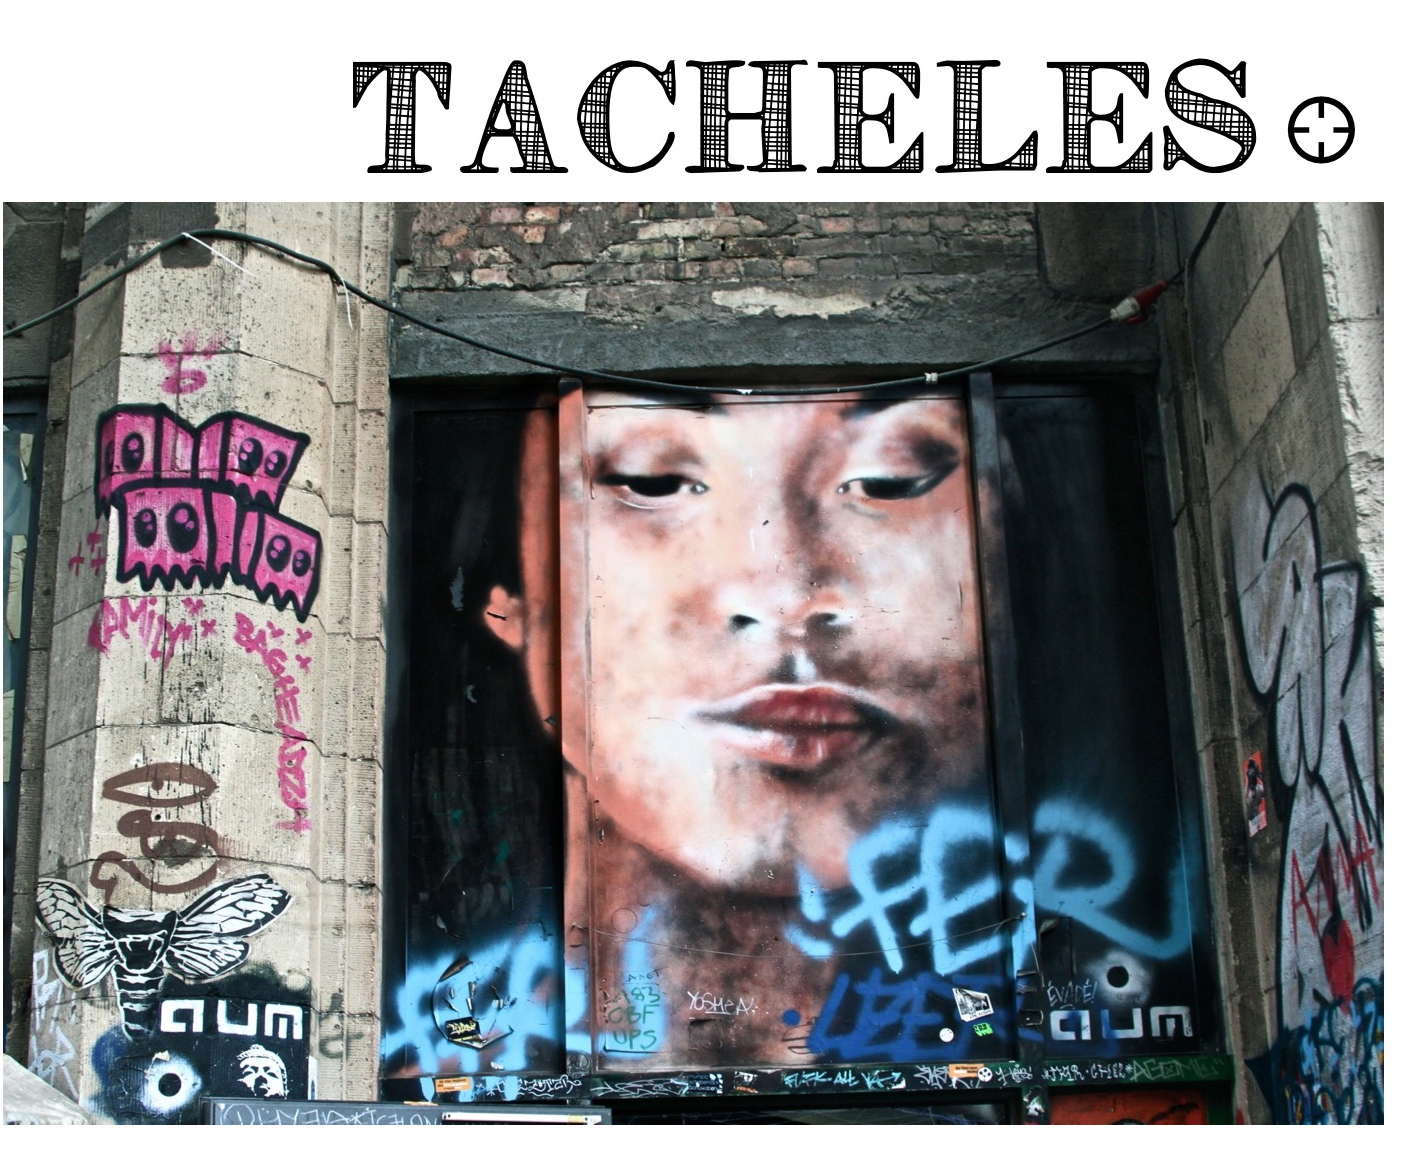 berlin street art tacheles man que faire a berlin art initiation apprendre l'allemand